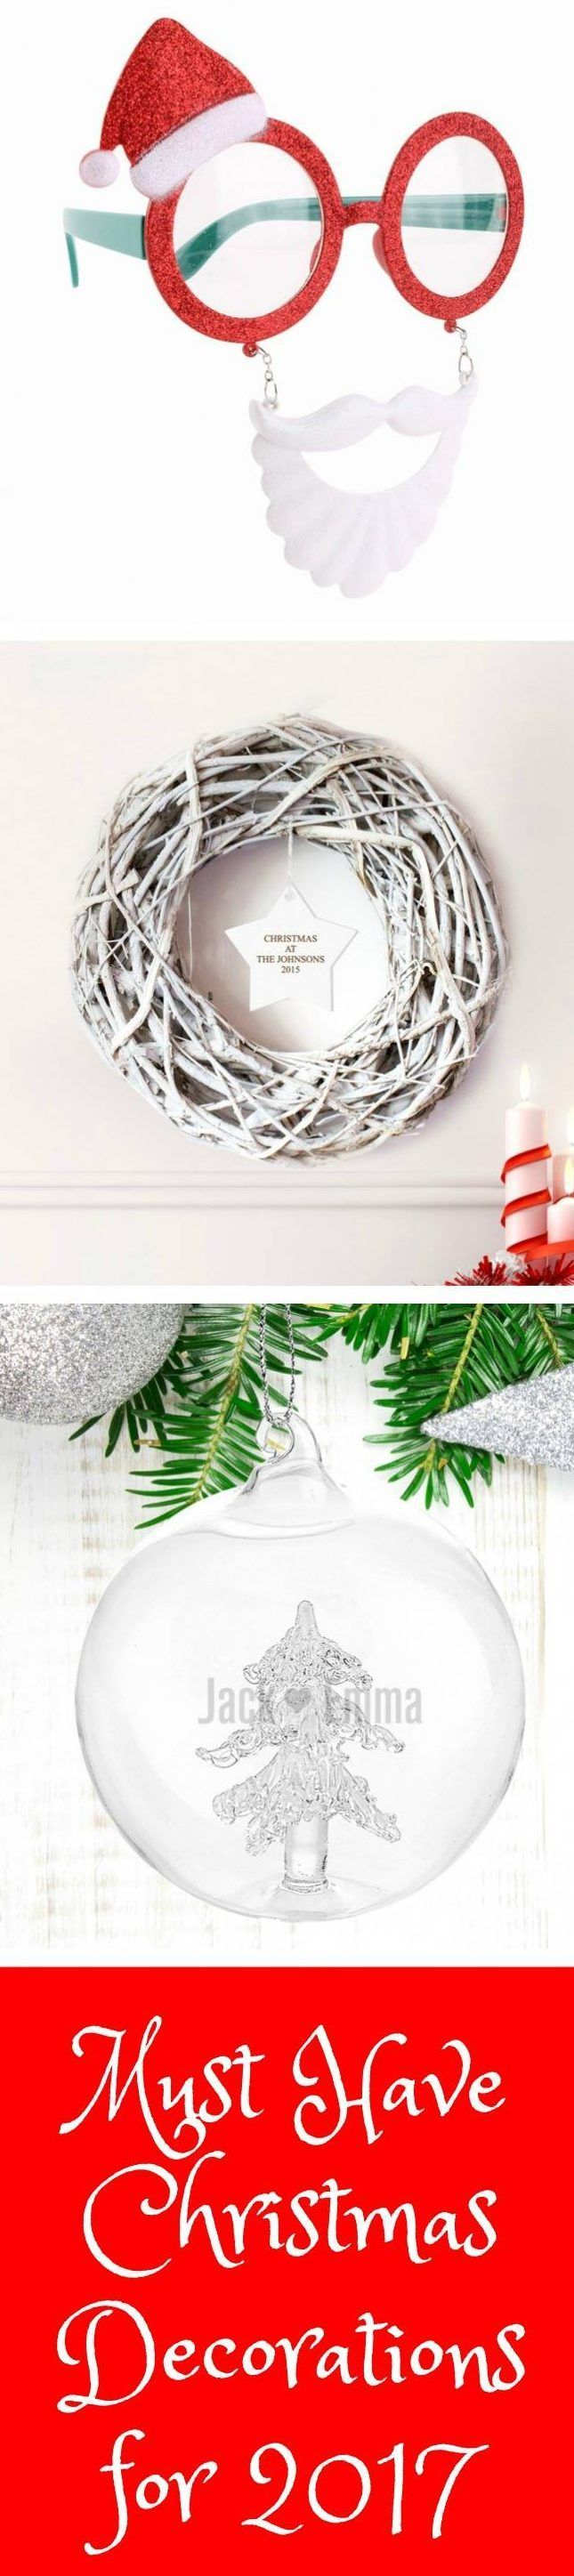 Must Have Christmas Decorations for Christmas 2017 The hottest and coolest Christmas decorations